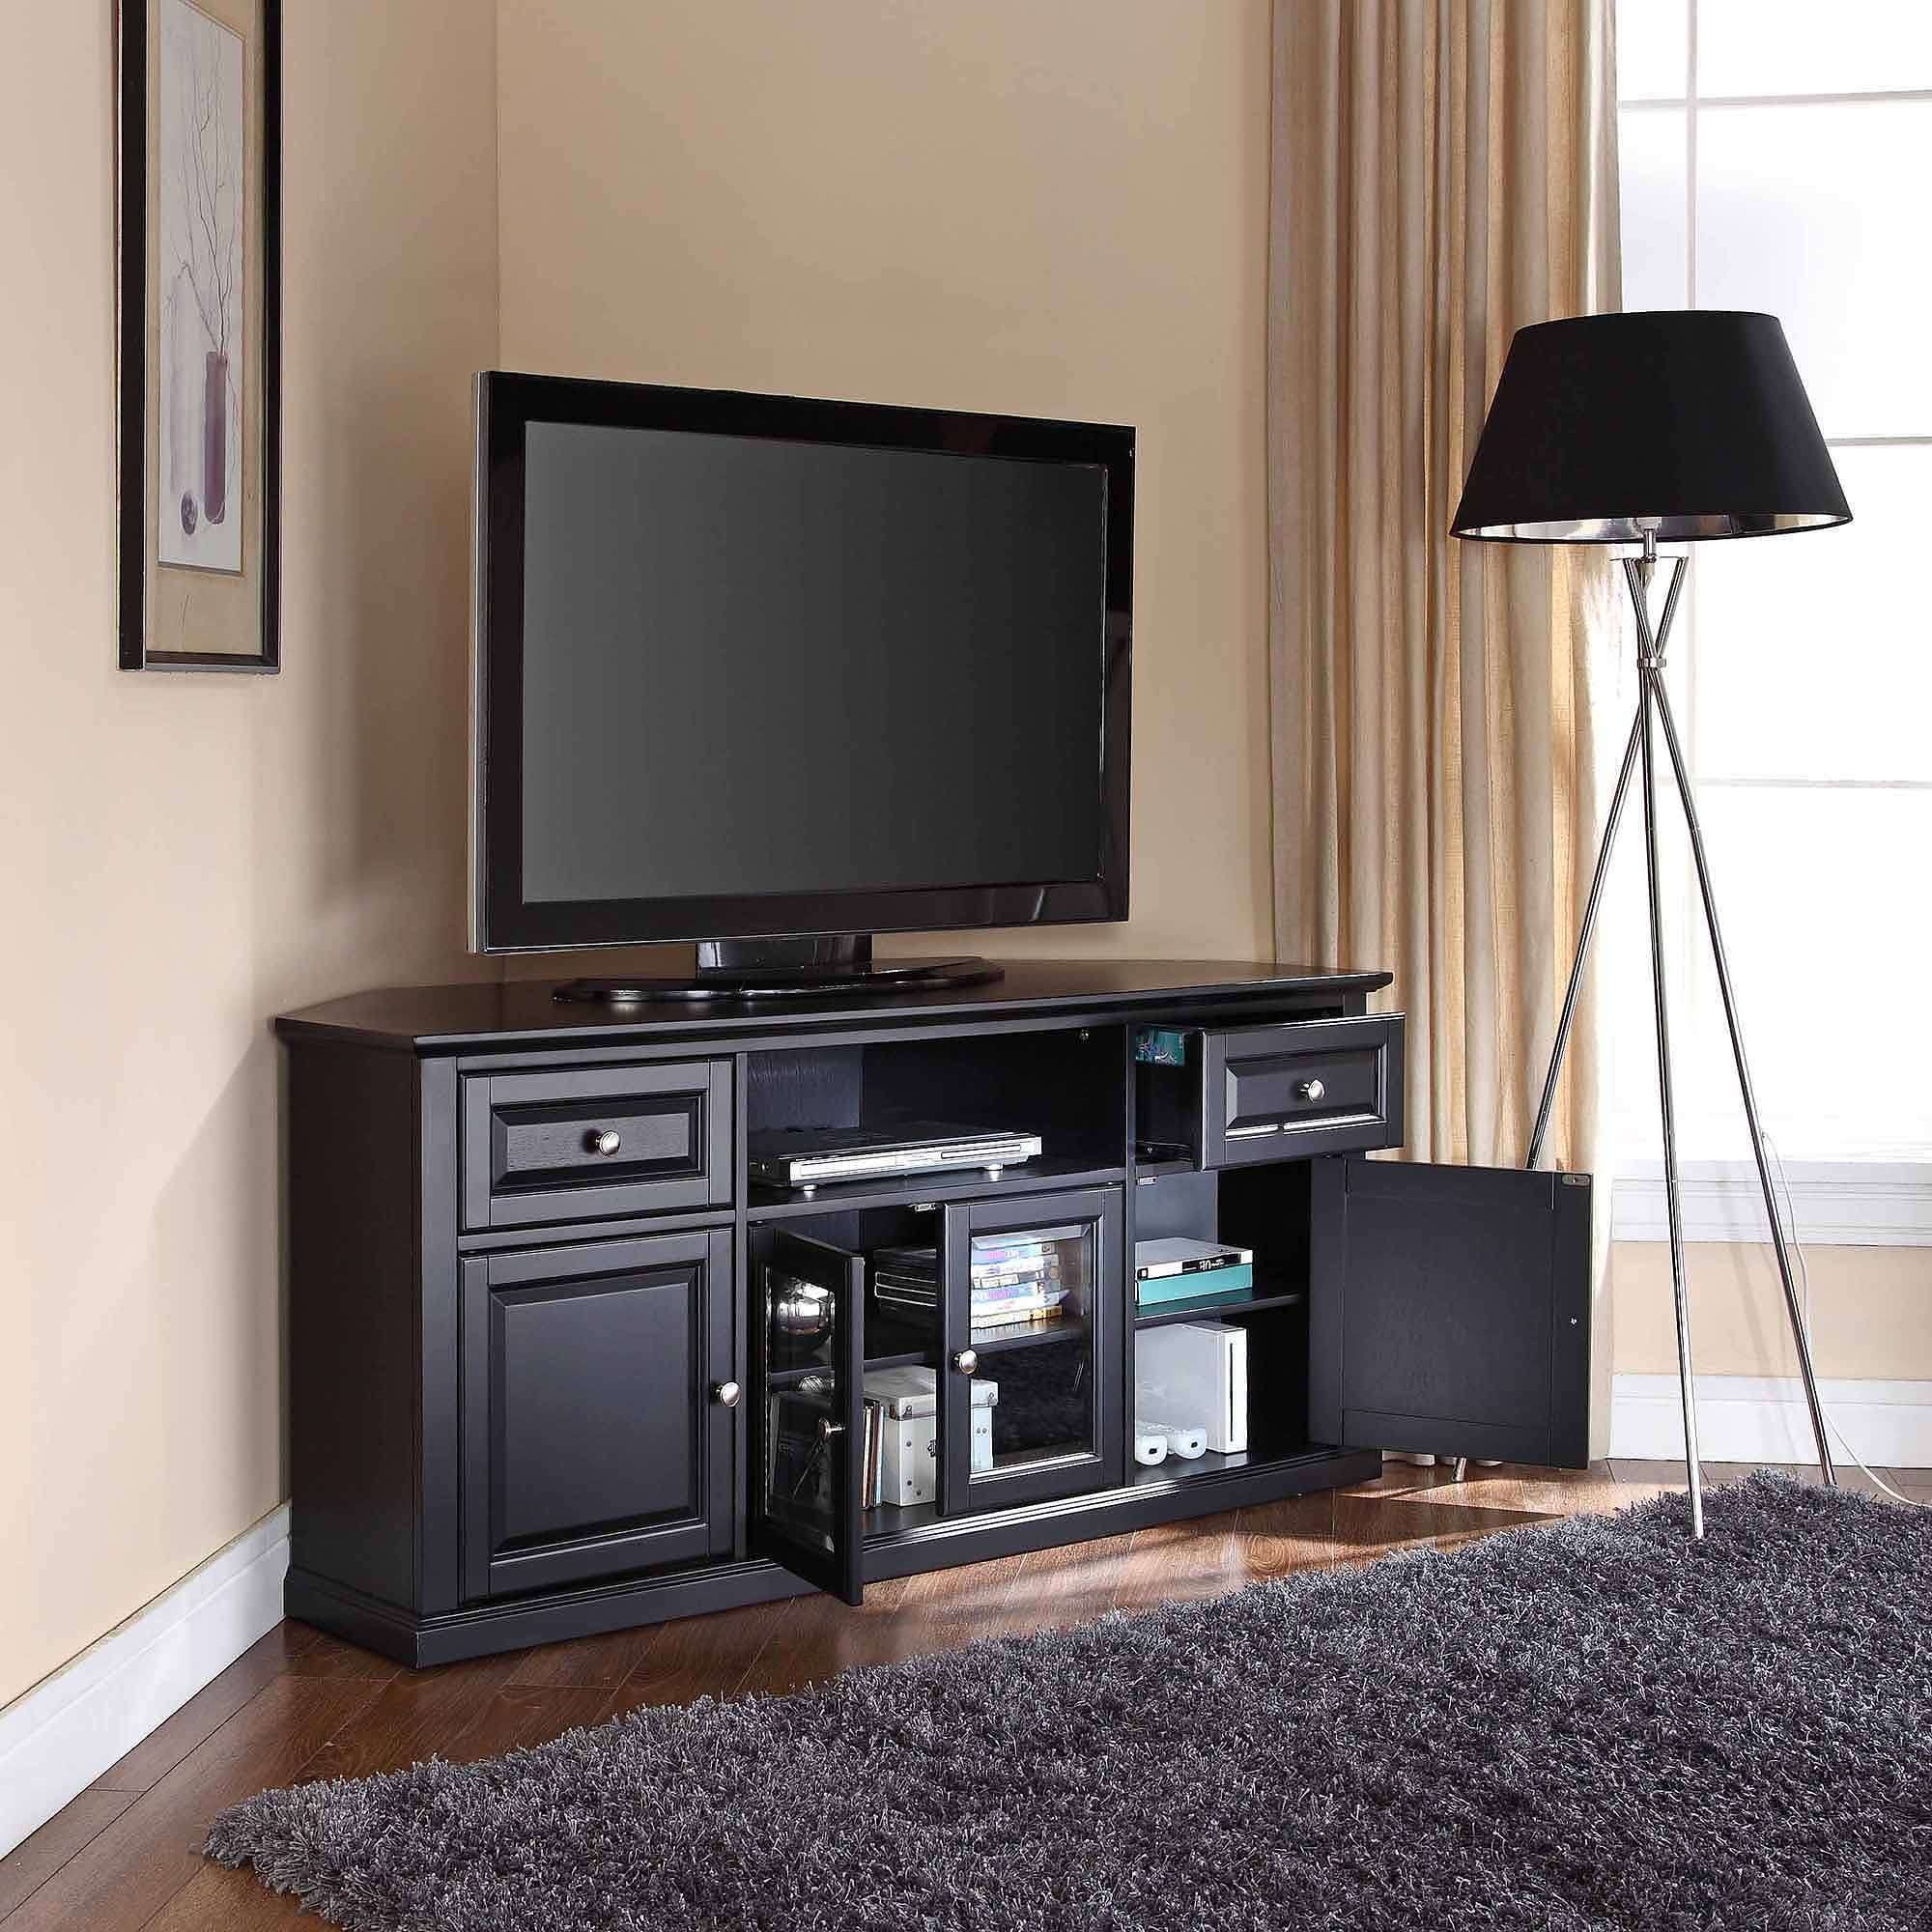 Fancy Tv Stands For 60 Inch Flat Screen 67 With Additional Modern Inside Modern 60 Inch Tv Stands (View 8 of 20)